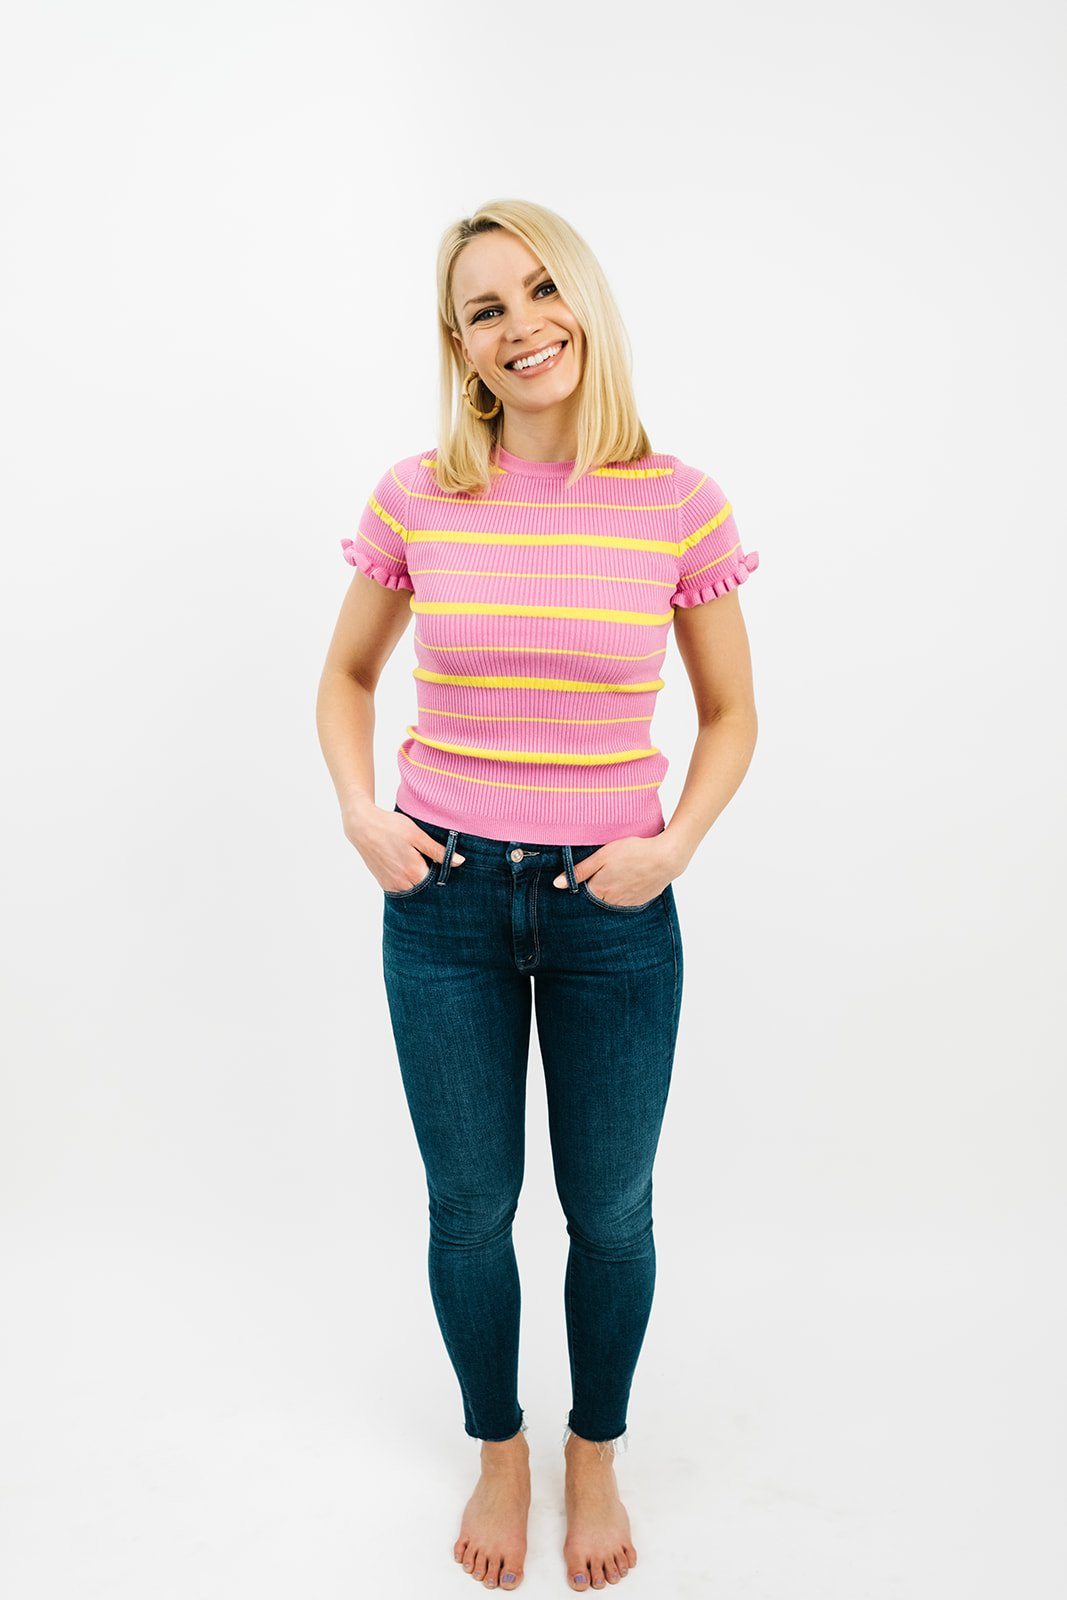 blonde woman in jeans and a pink striped t-shirt